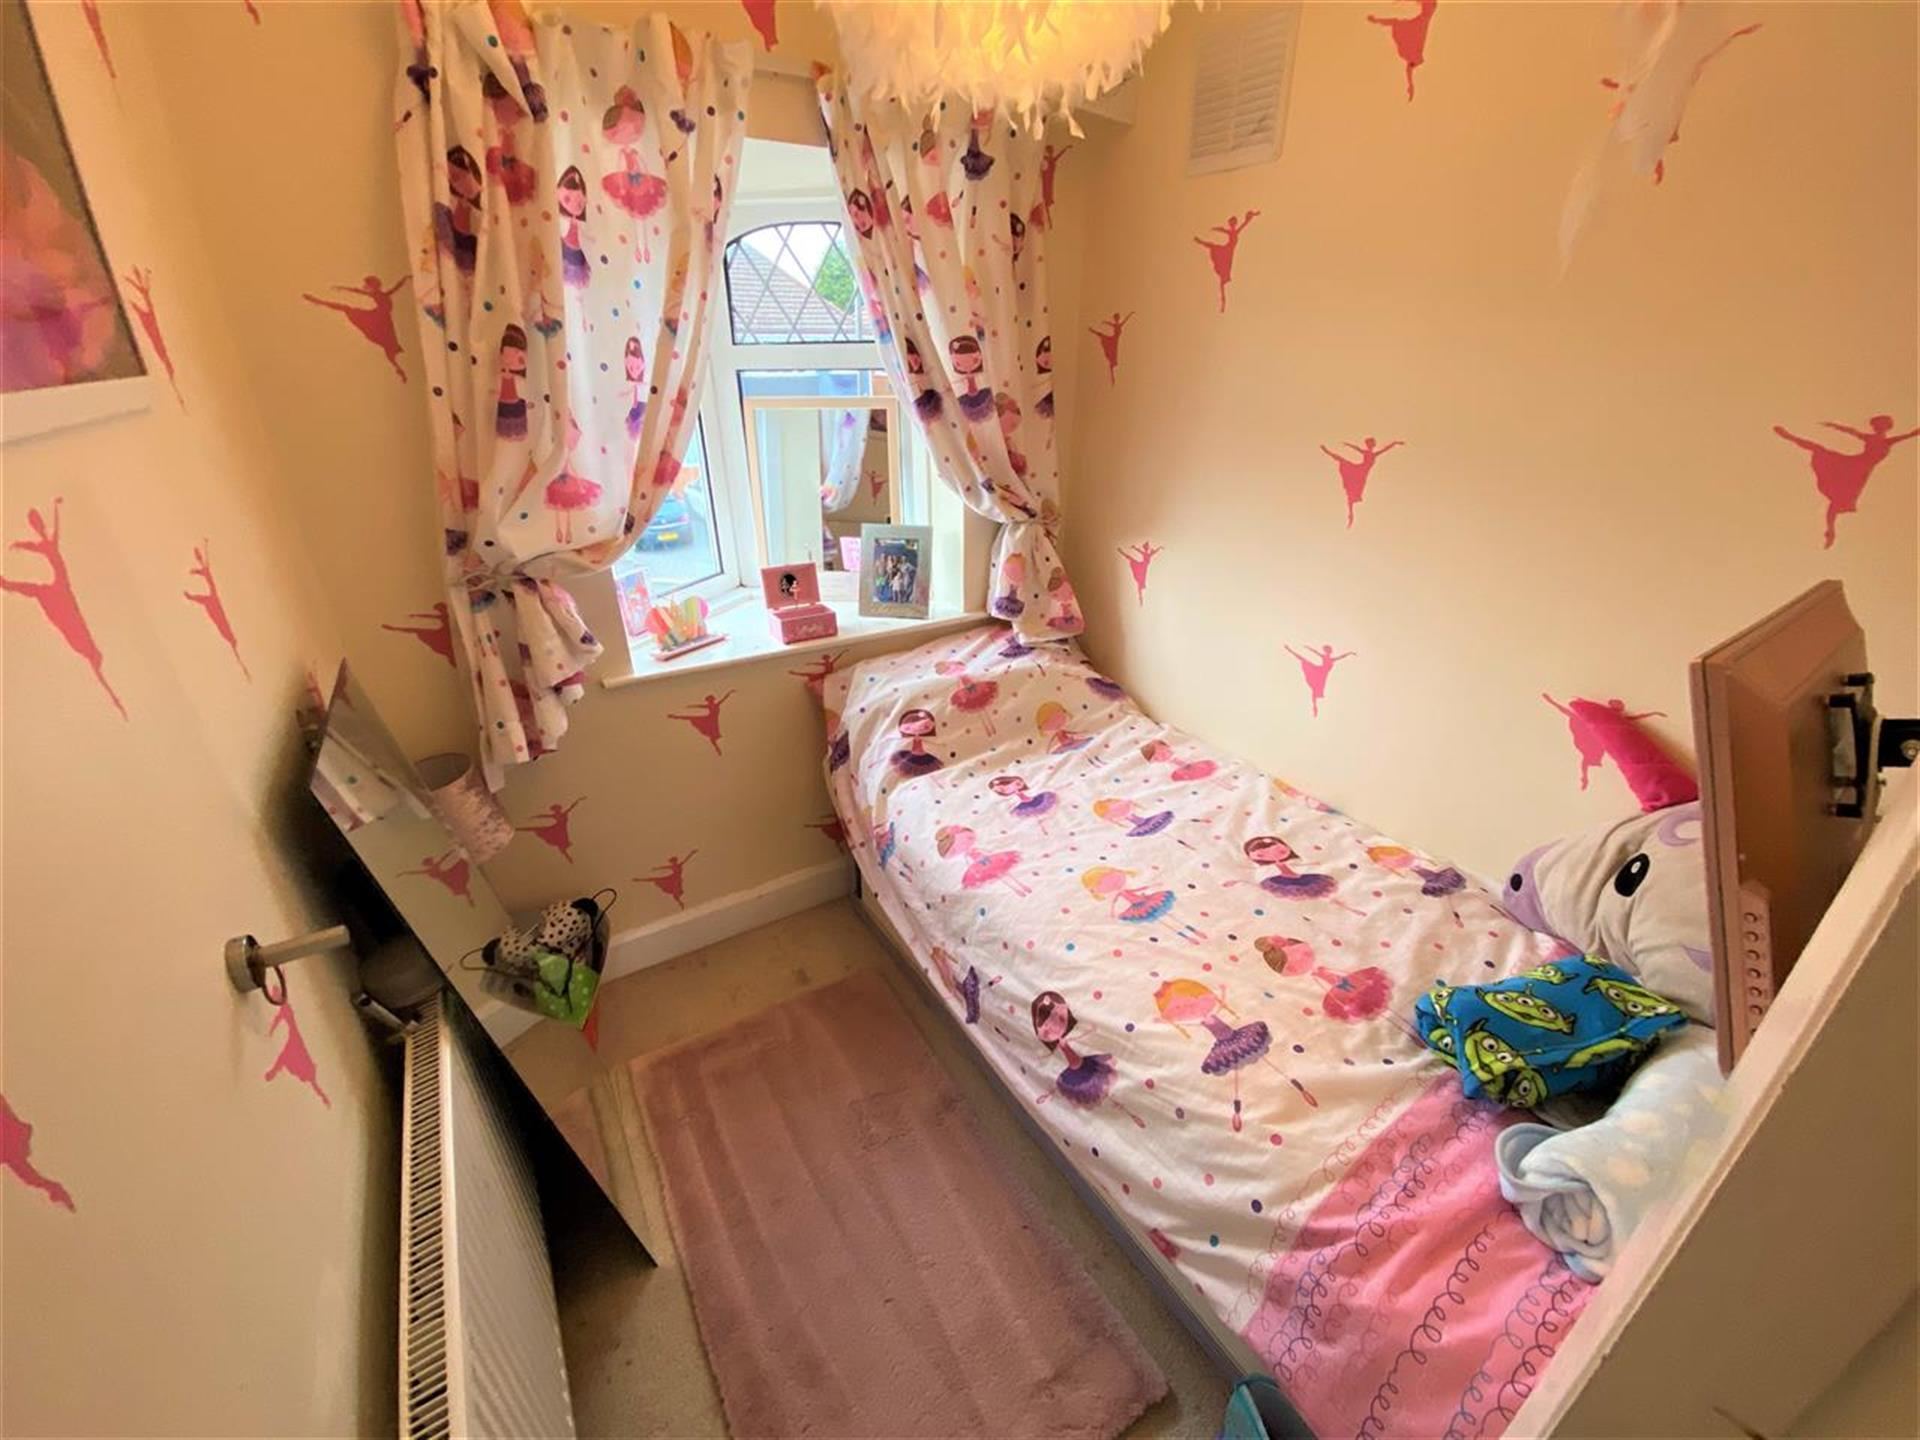 3 Bedroom Semi-detached House For Sale - Bedroom Two